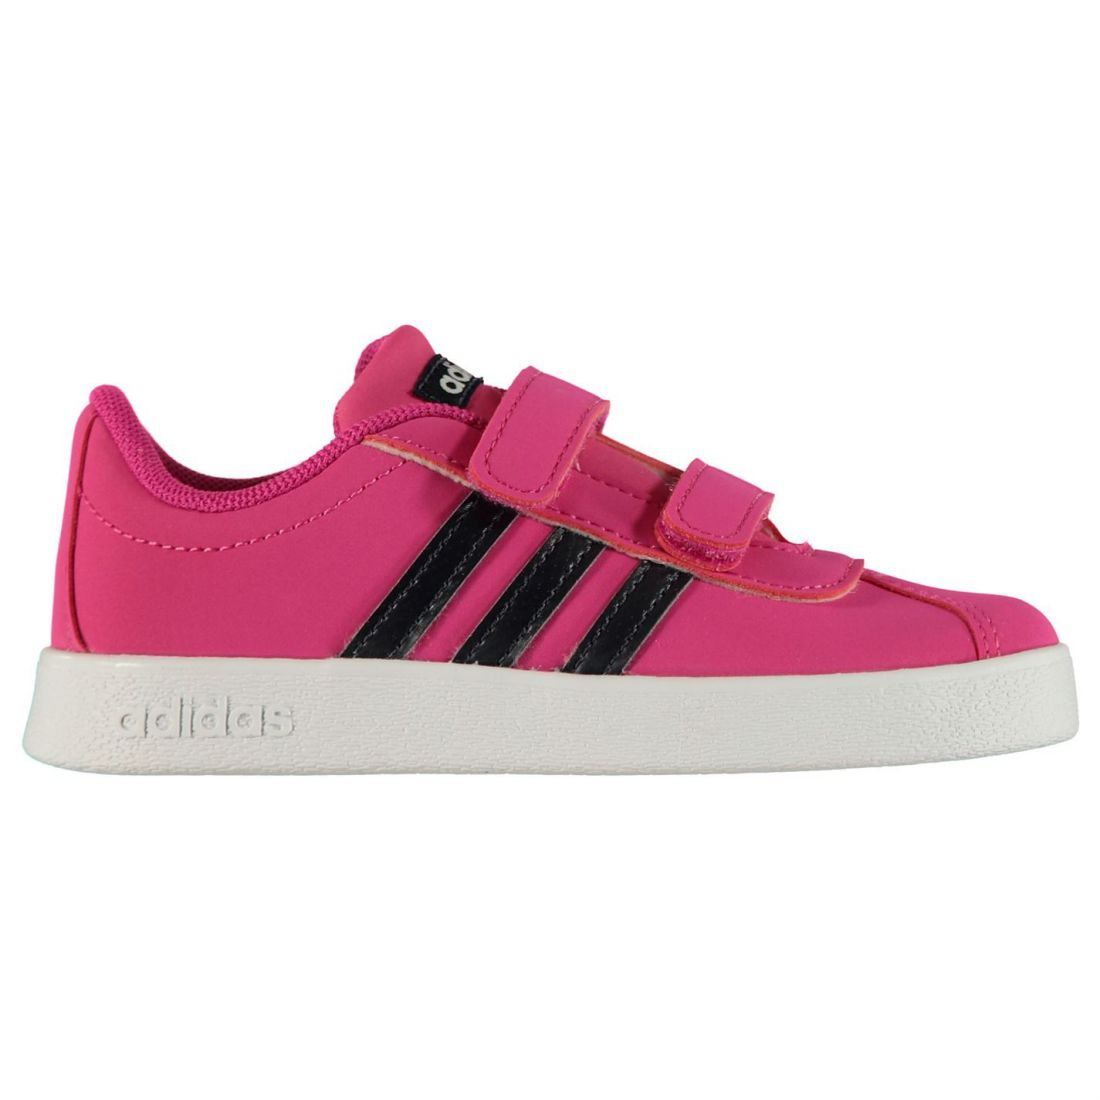 Girls' Shoes Adidas Kids Girls Alta Run Cf Infant Trainers Runners Padded Ankle Collar Hook Big Clearance Sale Shoes